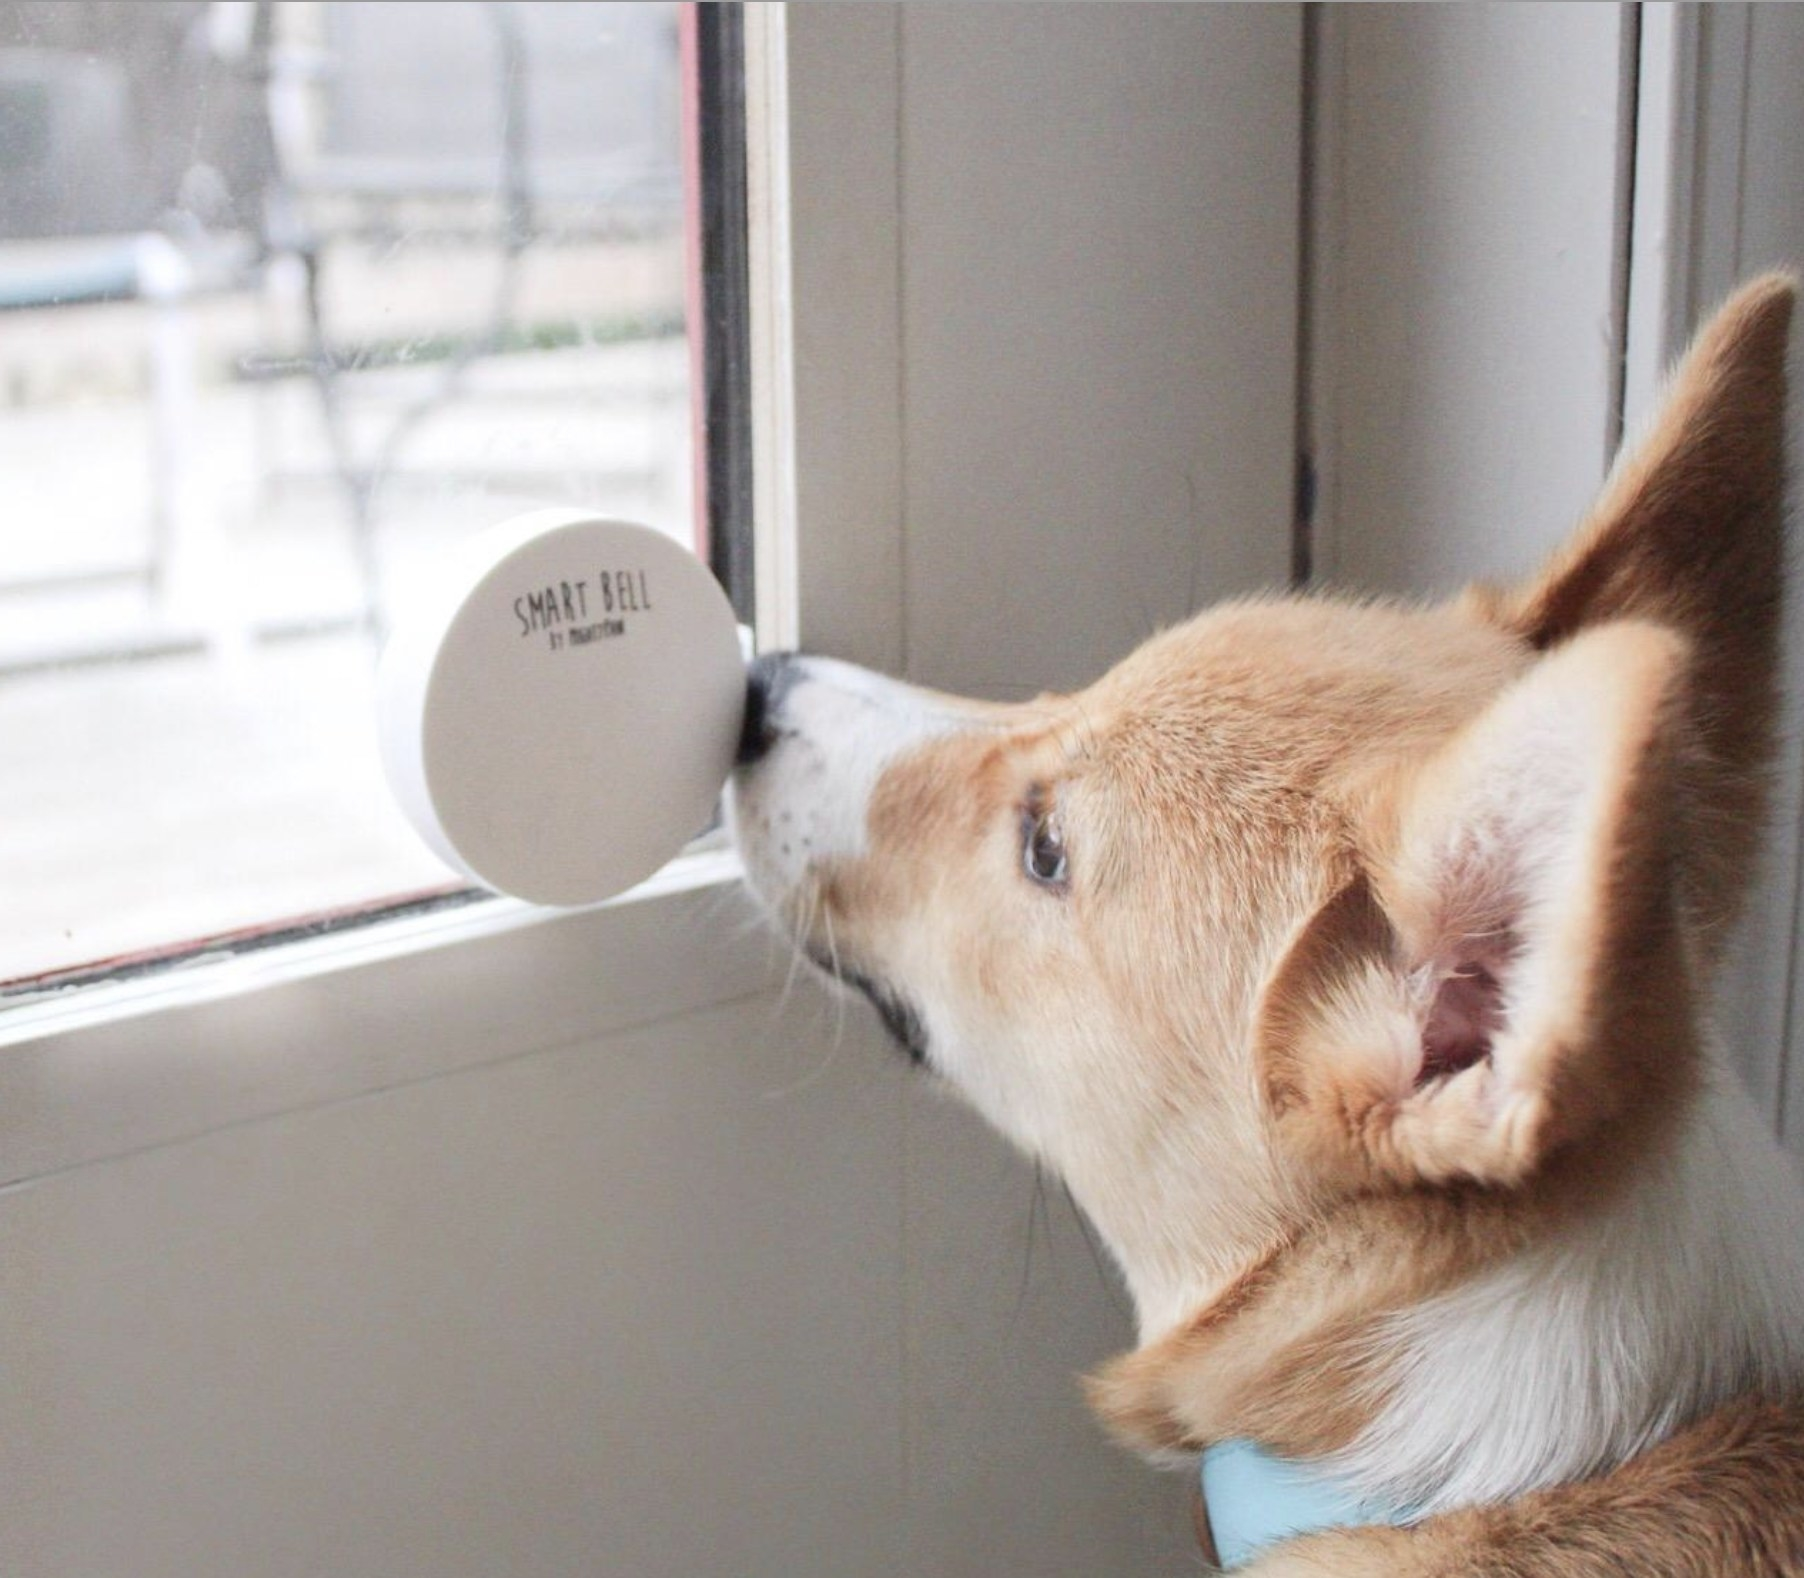 A reviewer's dog tapping the doorbell with their nose